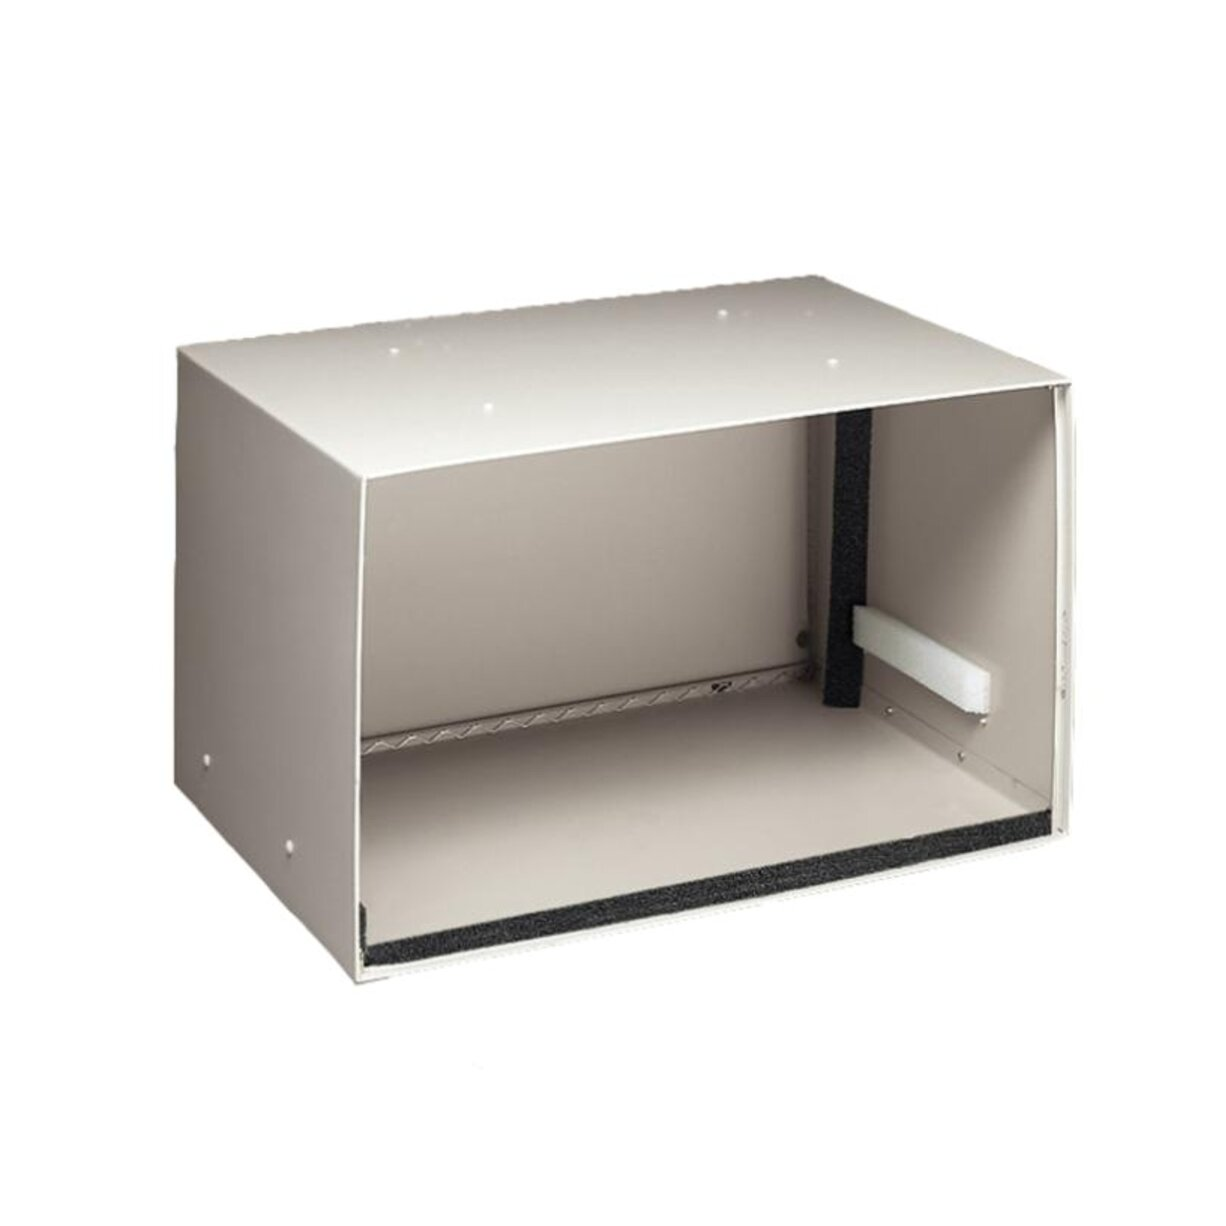 #746657 Frigidaire 8 000 14 000 BTU Wall Sleeve & Reviews Wayfair Best 10603 Air Conditioner Wall Sleeve photos with 1226x1226 px on helpvideos.info - Air Conditioners, Air Coolers and more